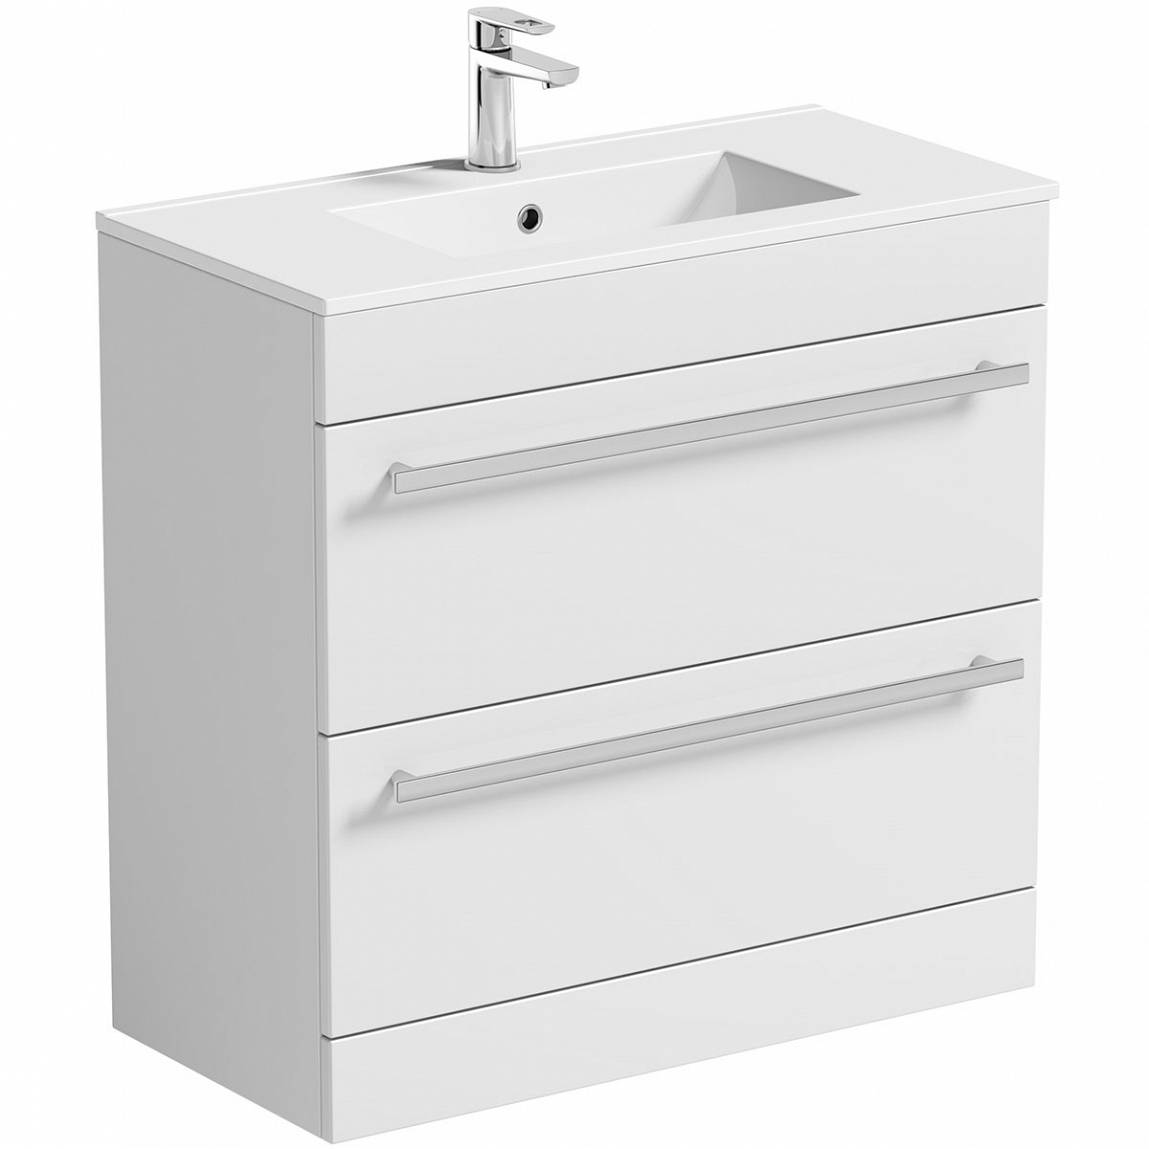 Image of Odessa White Floor Mounted 800 Drawer Unit & Basin